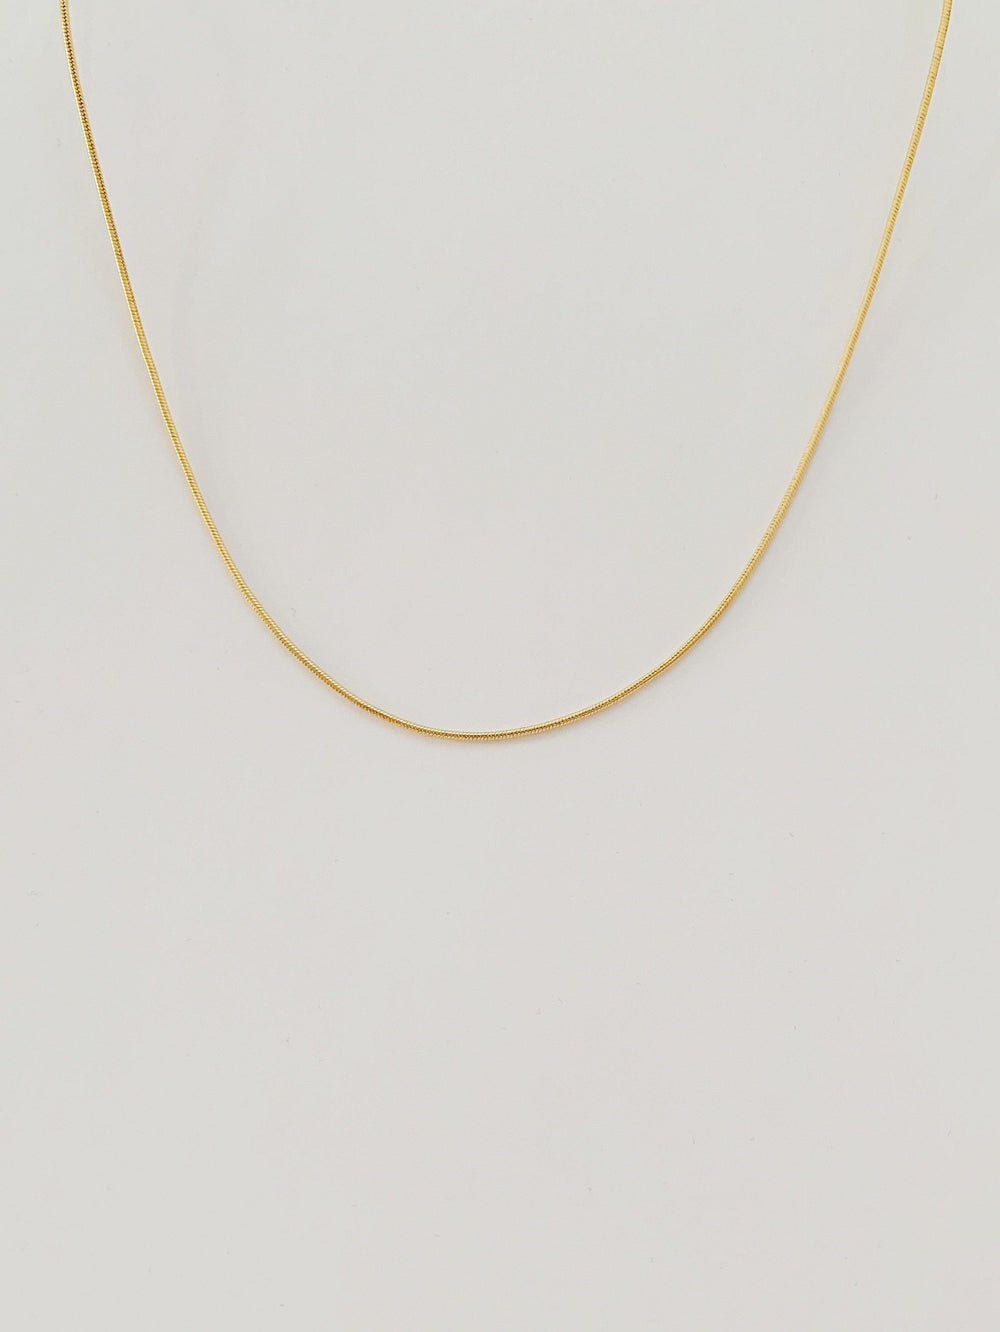 Indy Gold Necklace - Amillis